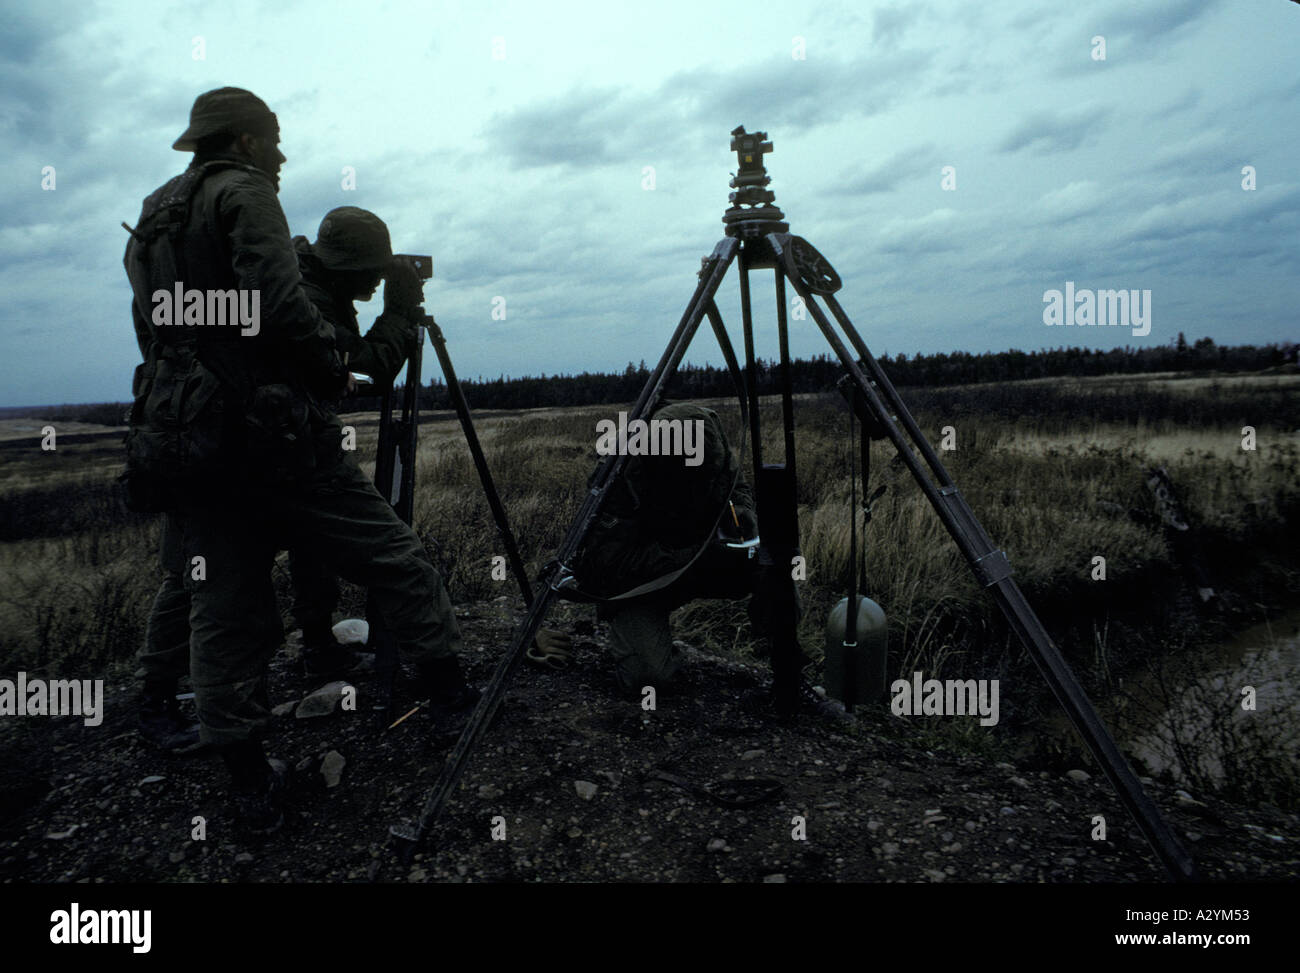 Canadian Army Stock Photos Amp Canadian Army Stock Images